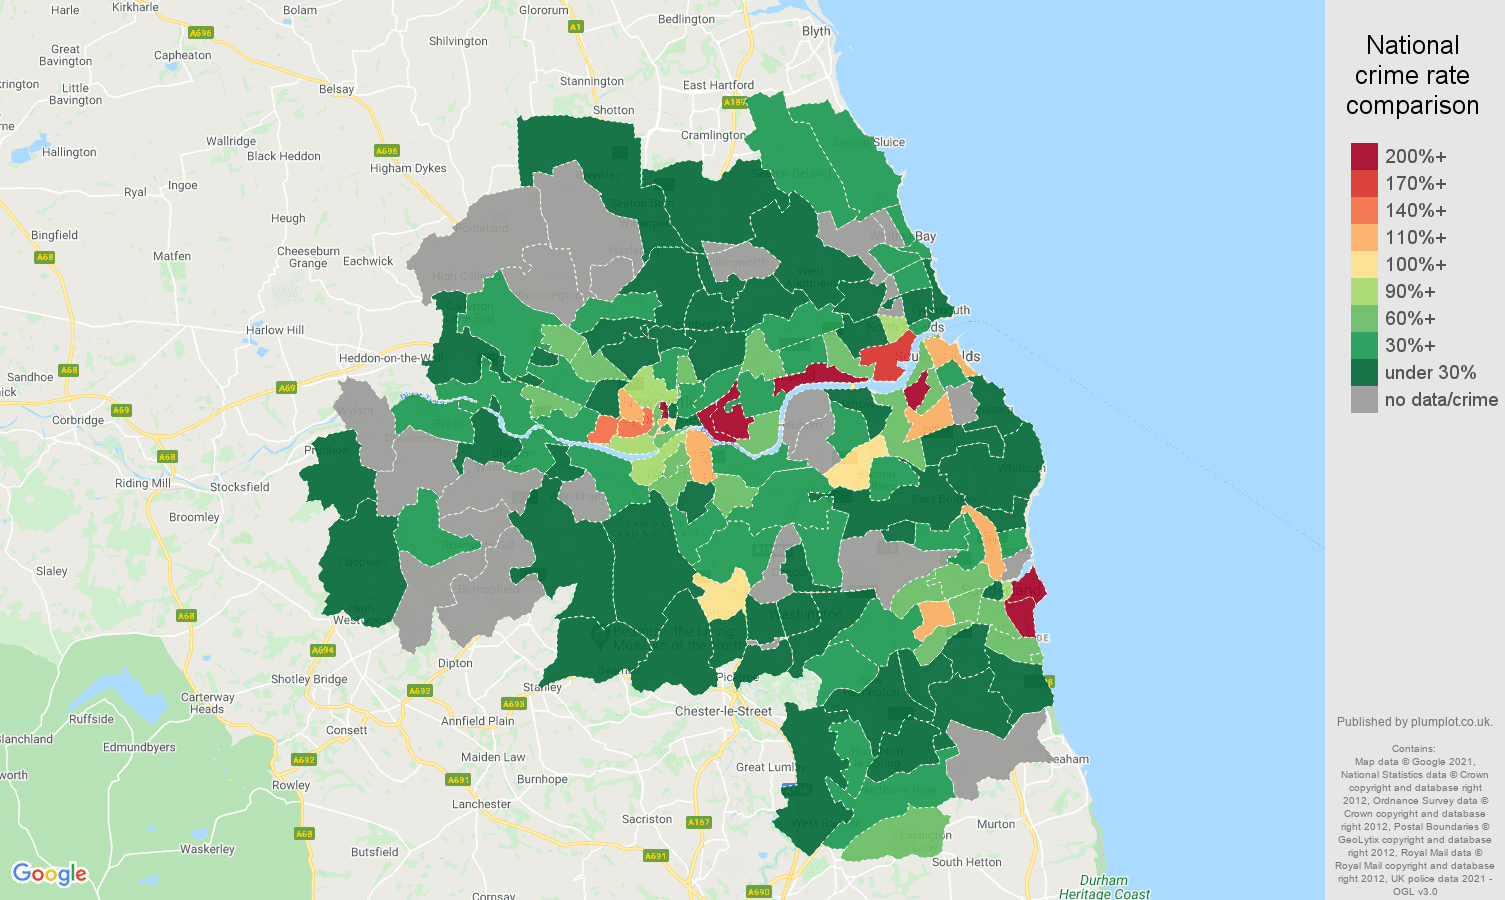 Tyne and Wear robbery crime rate comparison map